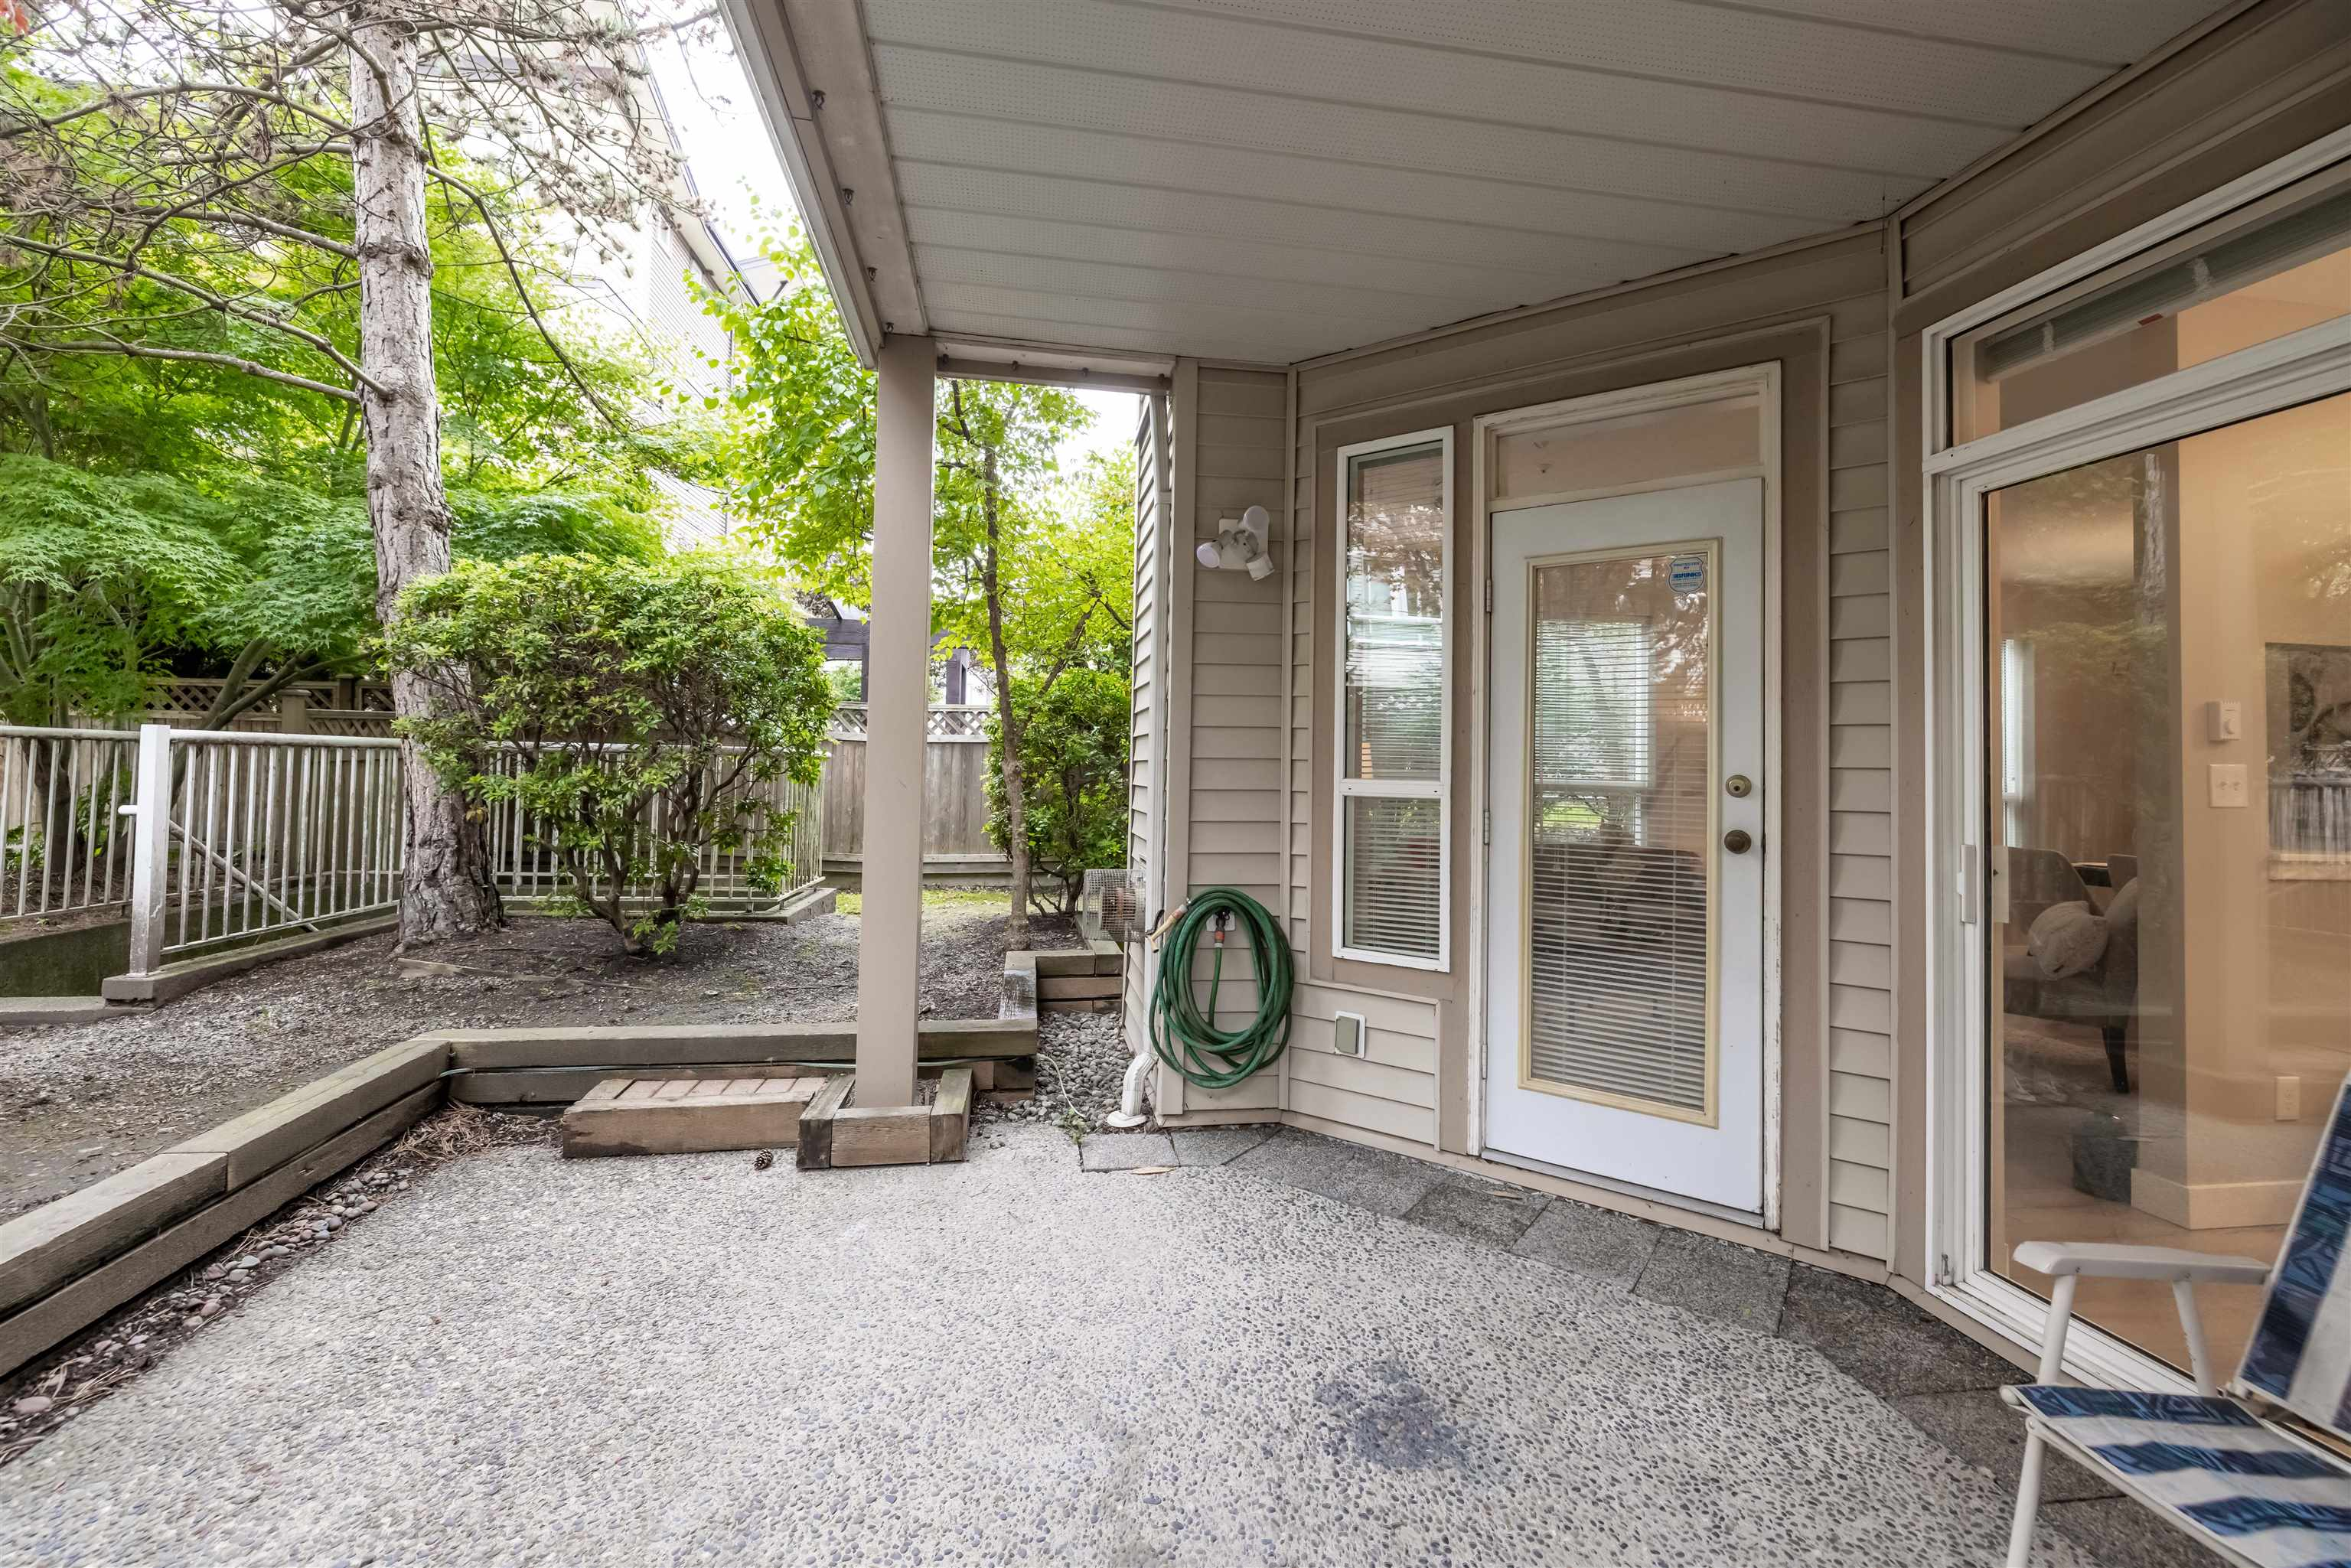 105 8139 121A STREET - Queen Mary Park Surrey Apartment/Condo for sale, 2 Bedrooms (R2623168) - #29